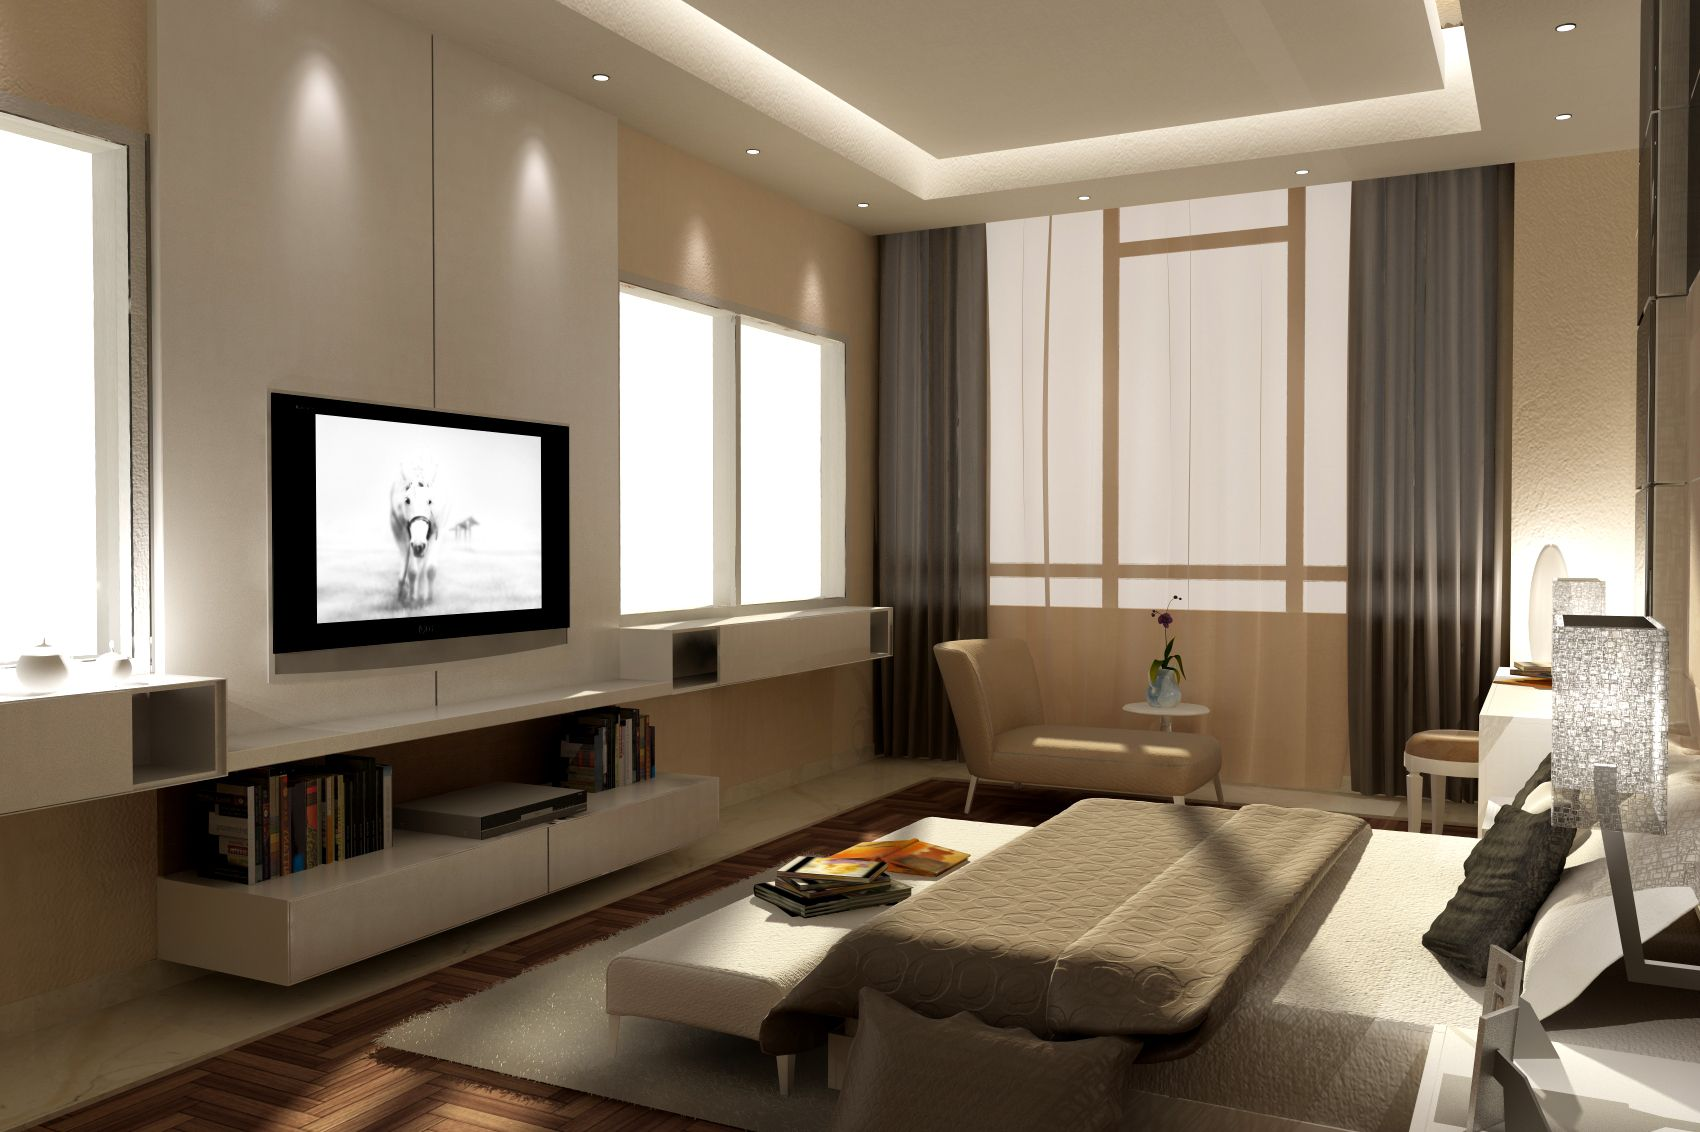 Bedroom modern bedroom interior design 3d max 3d for Interior designs of bedrooms pictures